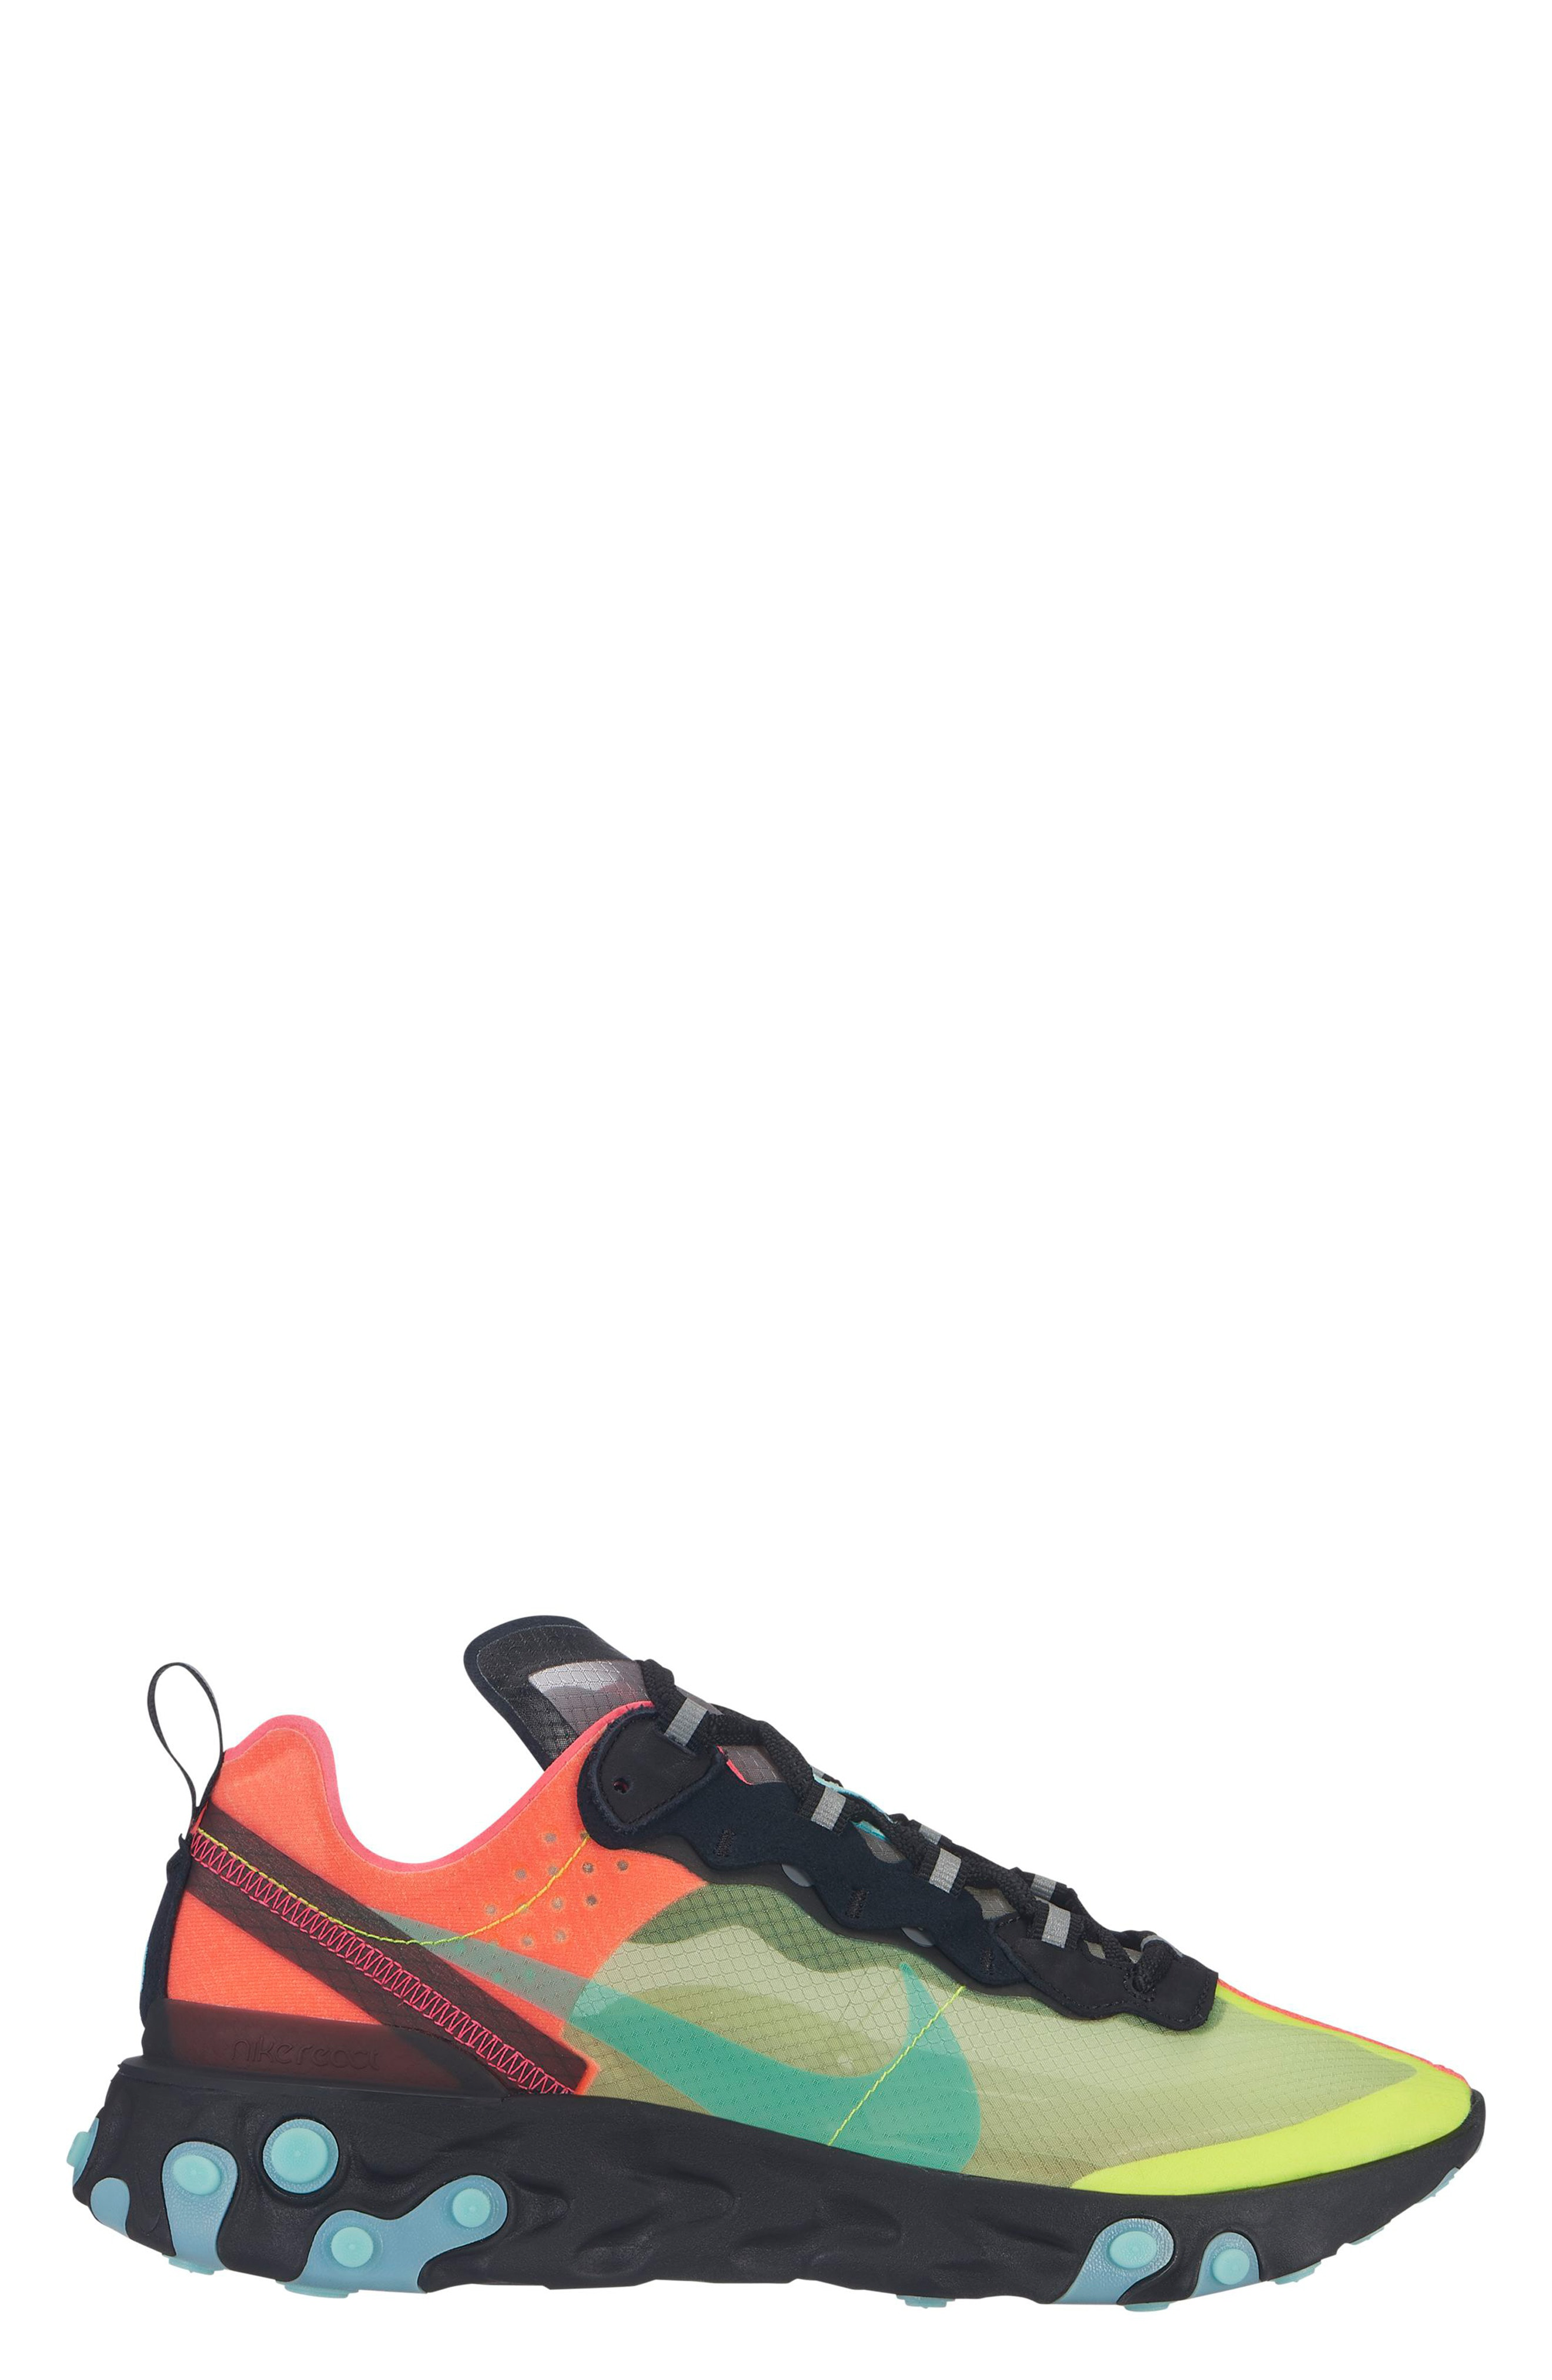 ee63a44af74c Nike React Element 87 Sneaker In Volt  Aura Green